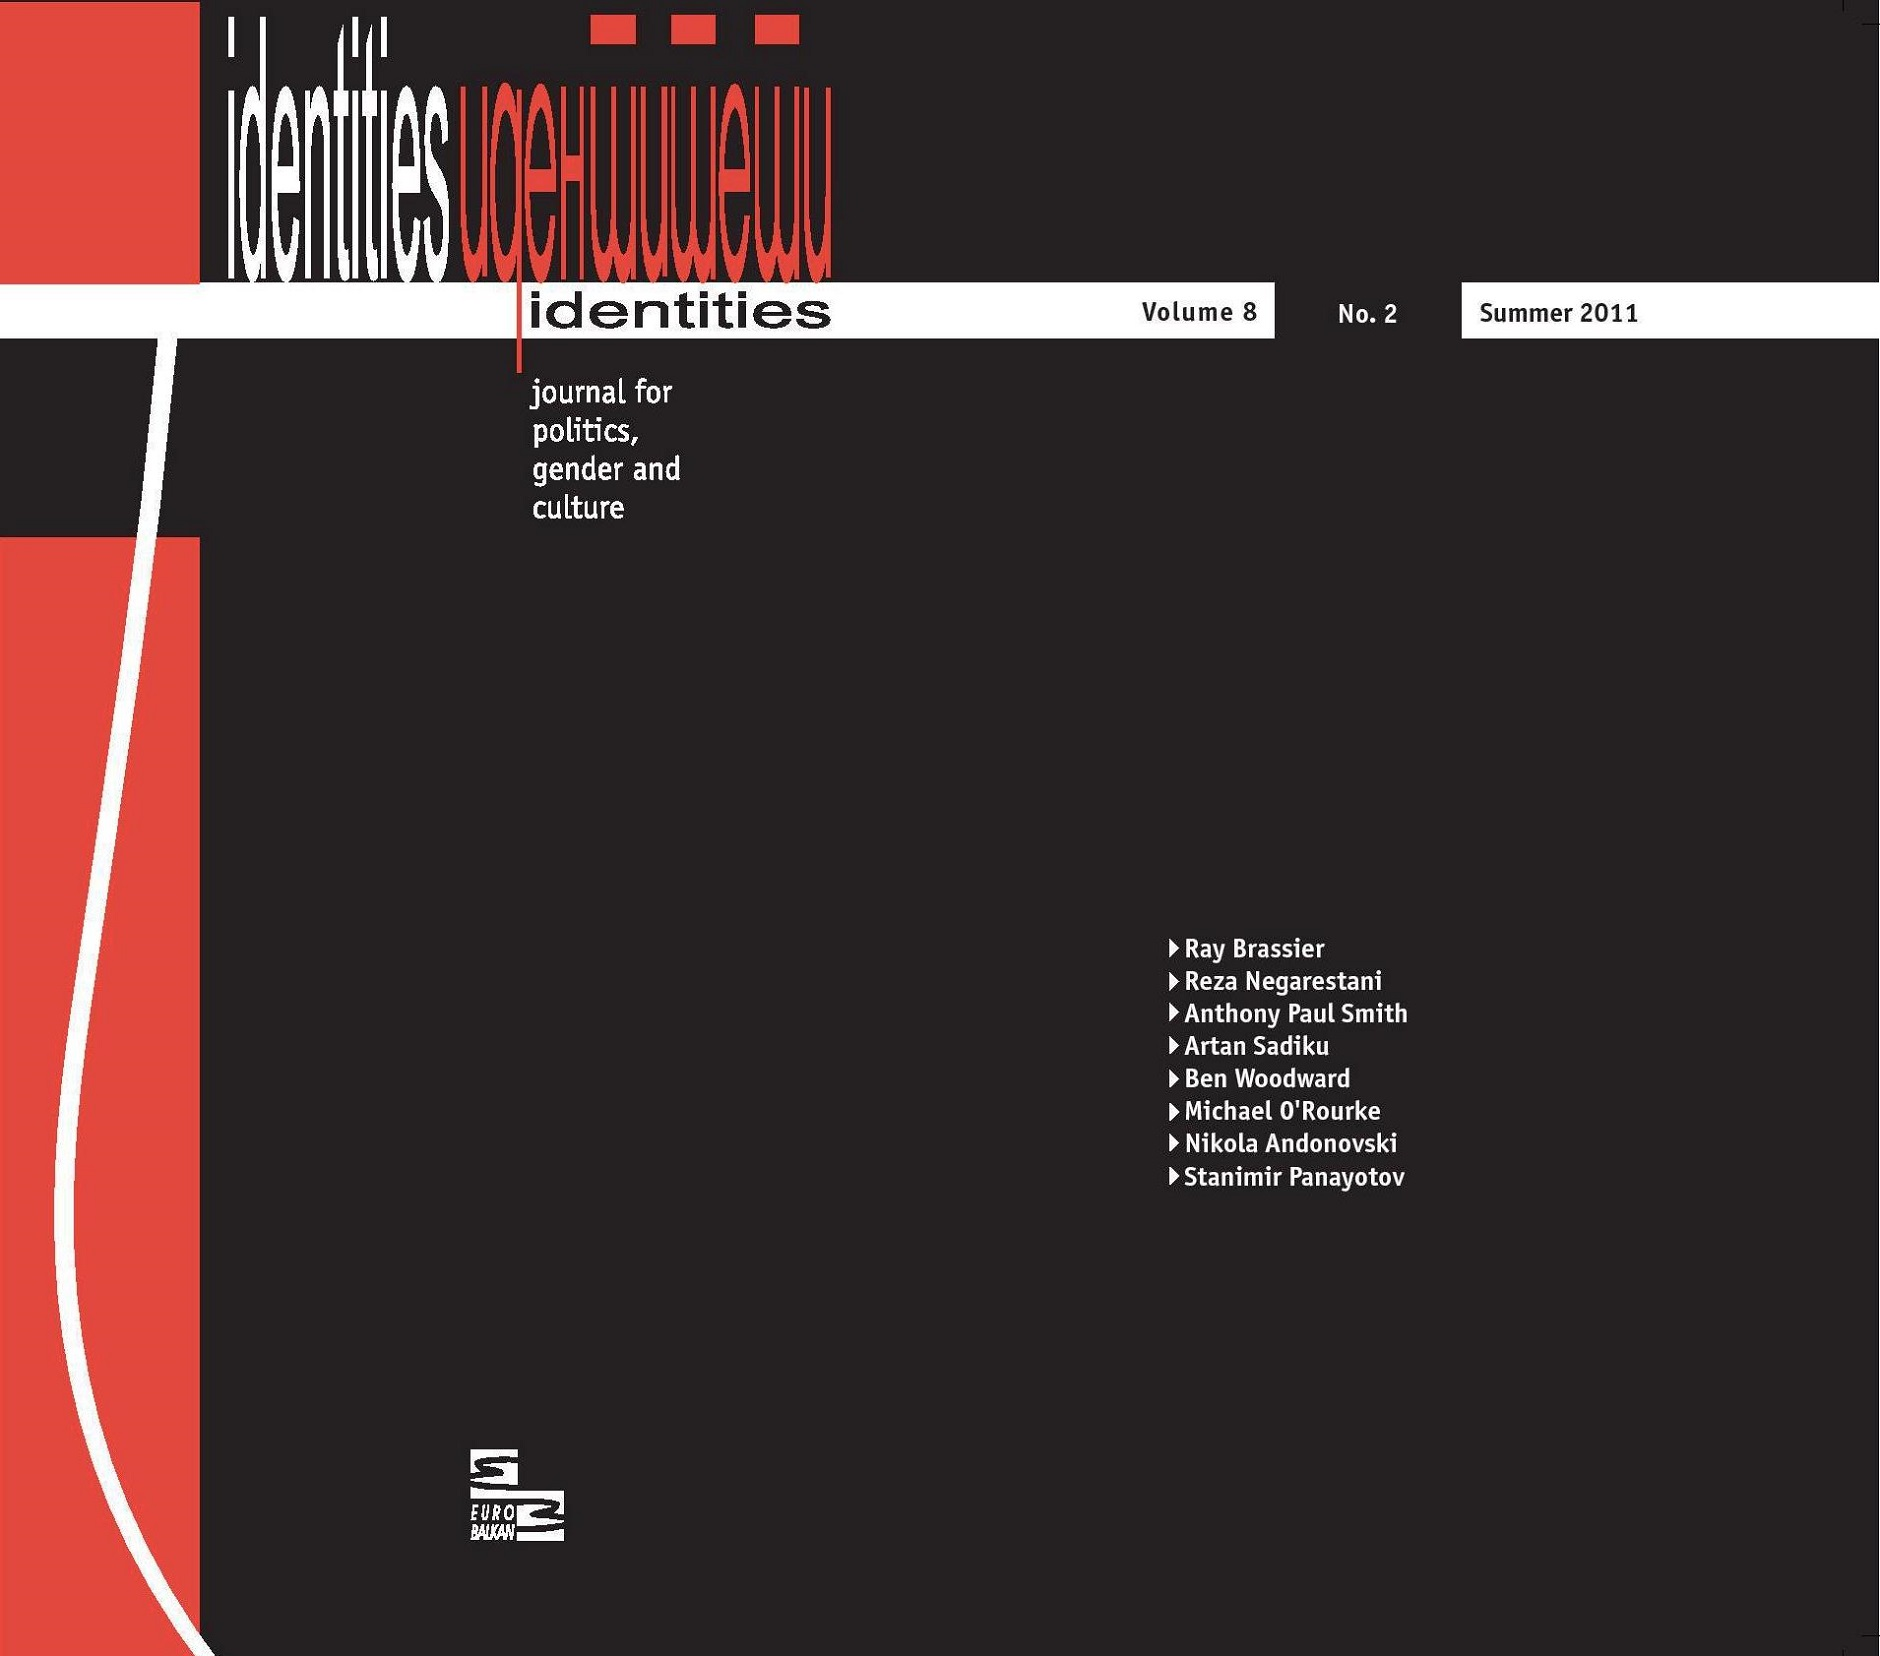 View Vol. 8 No. 2 (2011): Vol. 8, No. 2 (Summer 2011) - Issue No. 19 | Topic: Heretical Realisms, edited by Katerina Kolozova and Stanimir Panayotov